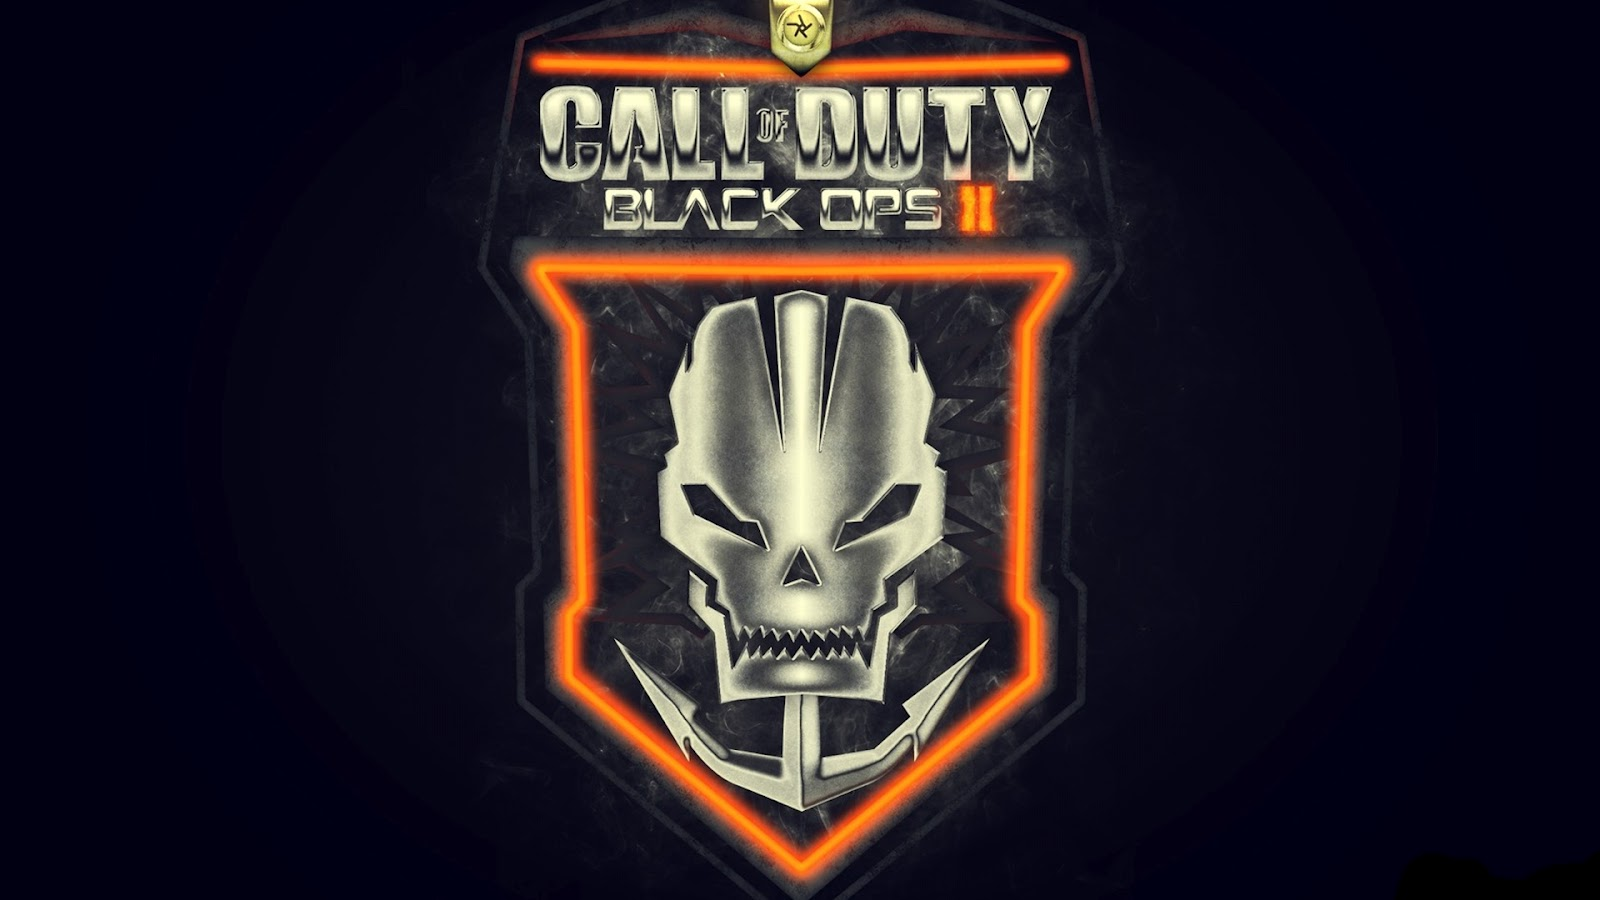 http://1.bp.blogspot.com/-gnjYFRAc-Uk/UDCDX5DN9jI/AAAAAAAAIhg/8wZ2CU_iDyA/s1600/call-of-duty-black-ops-ii-logo-1920x1080-wallpaper-HD.jpg